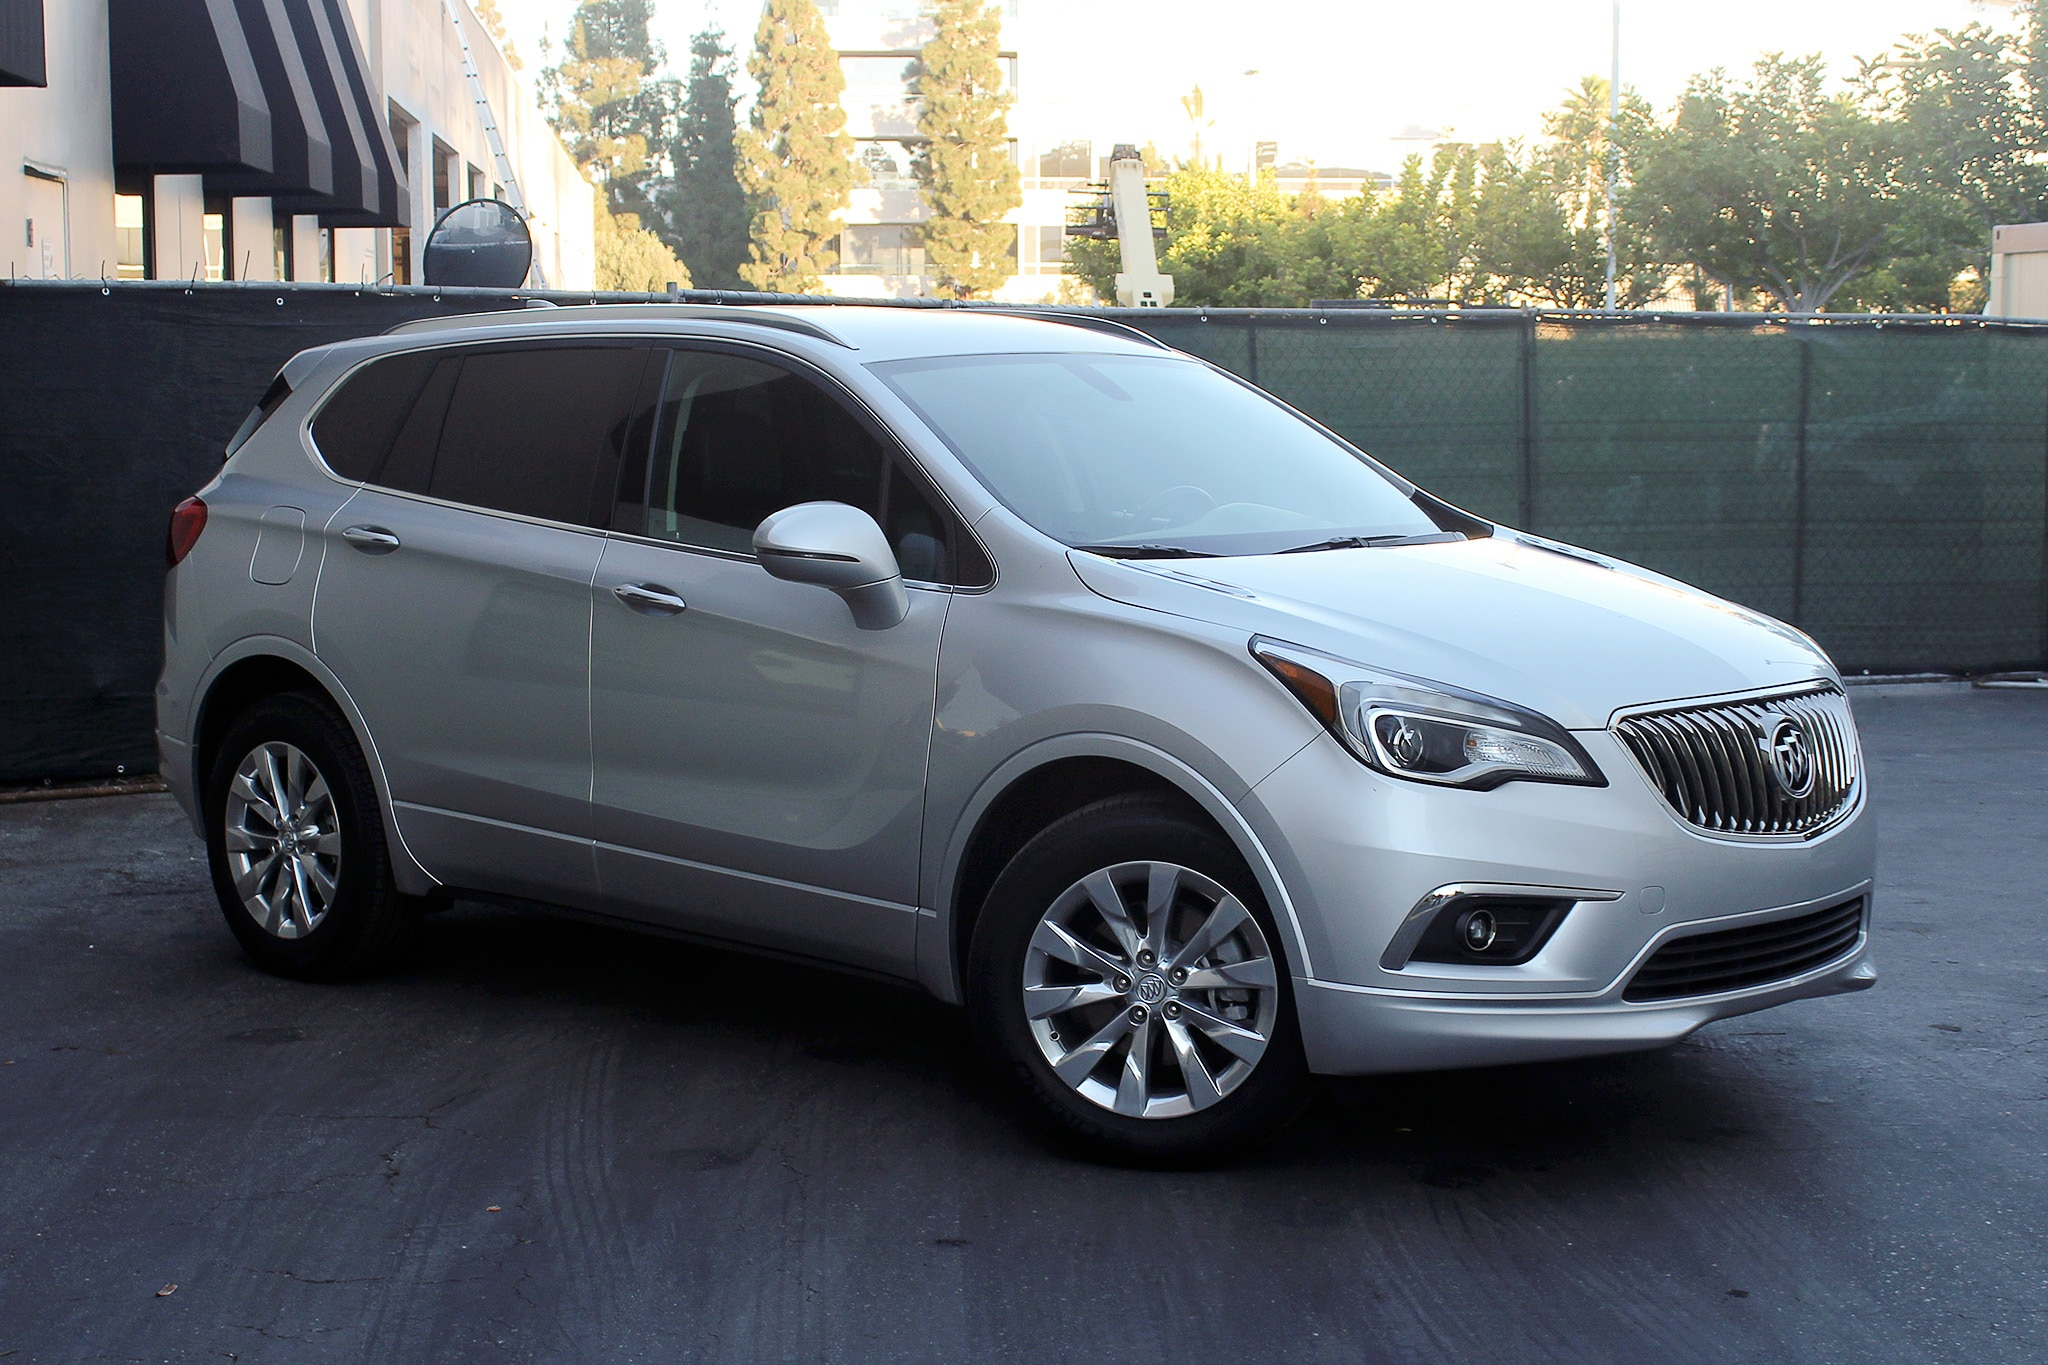 2017 Buick Envision Front Three Quarter 01